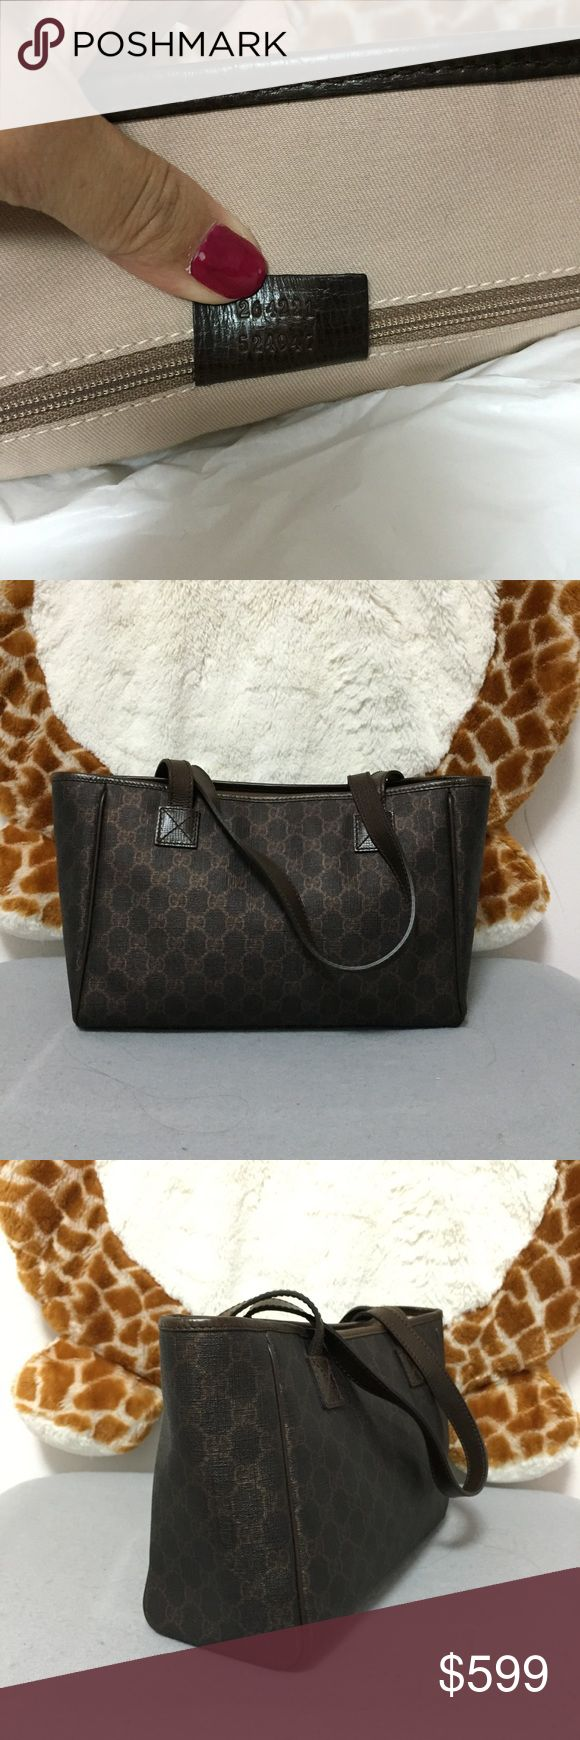 """BNWT Gucci GG Web Canvas Joy Tote Ebony w Bronze Material: Canvas w/ GG web details Leather trim and shoulder straps Ebony color with shimmer bronze gg Front slip pocket  Interior fabric liner Interior zip pocket and patch pockets Approximate measurements: 12""""X8""""X5"""" Great purse to carry around! Gucci Bags Shoulder Bags"""